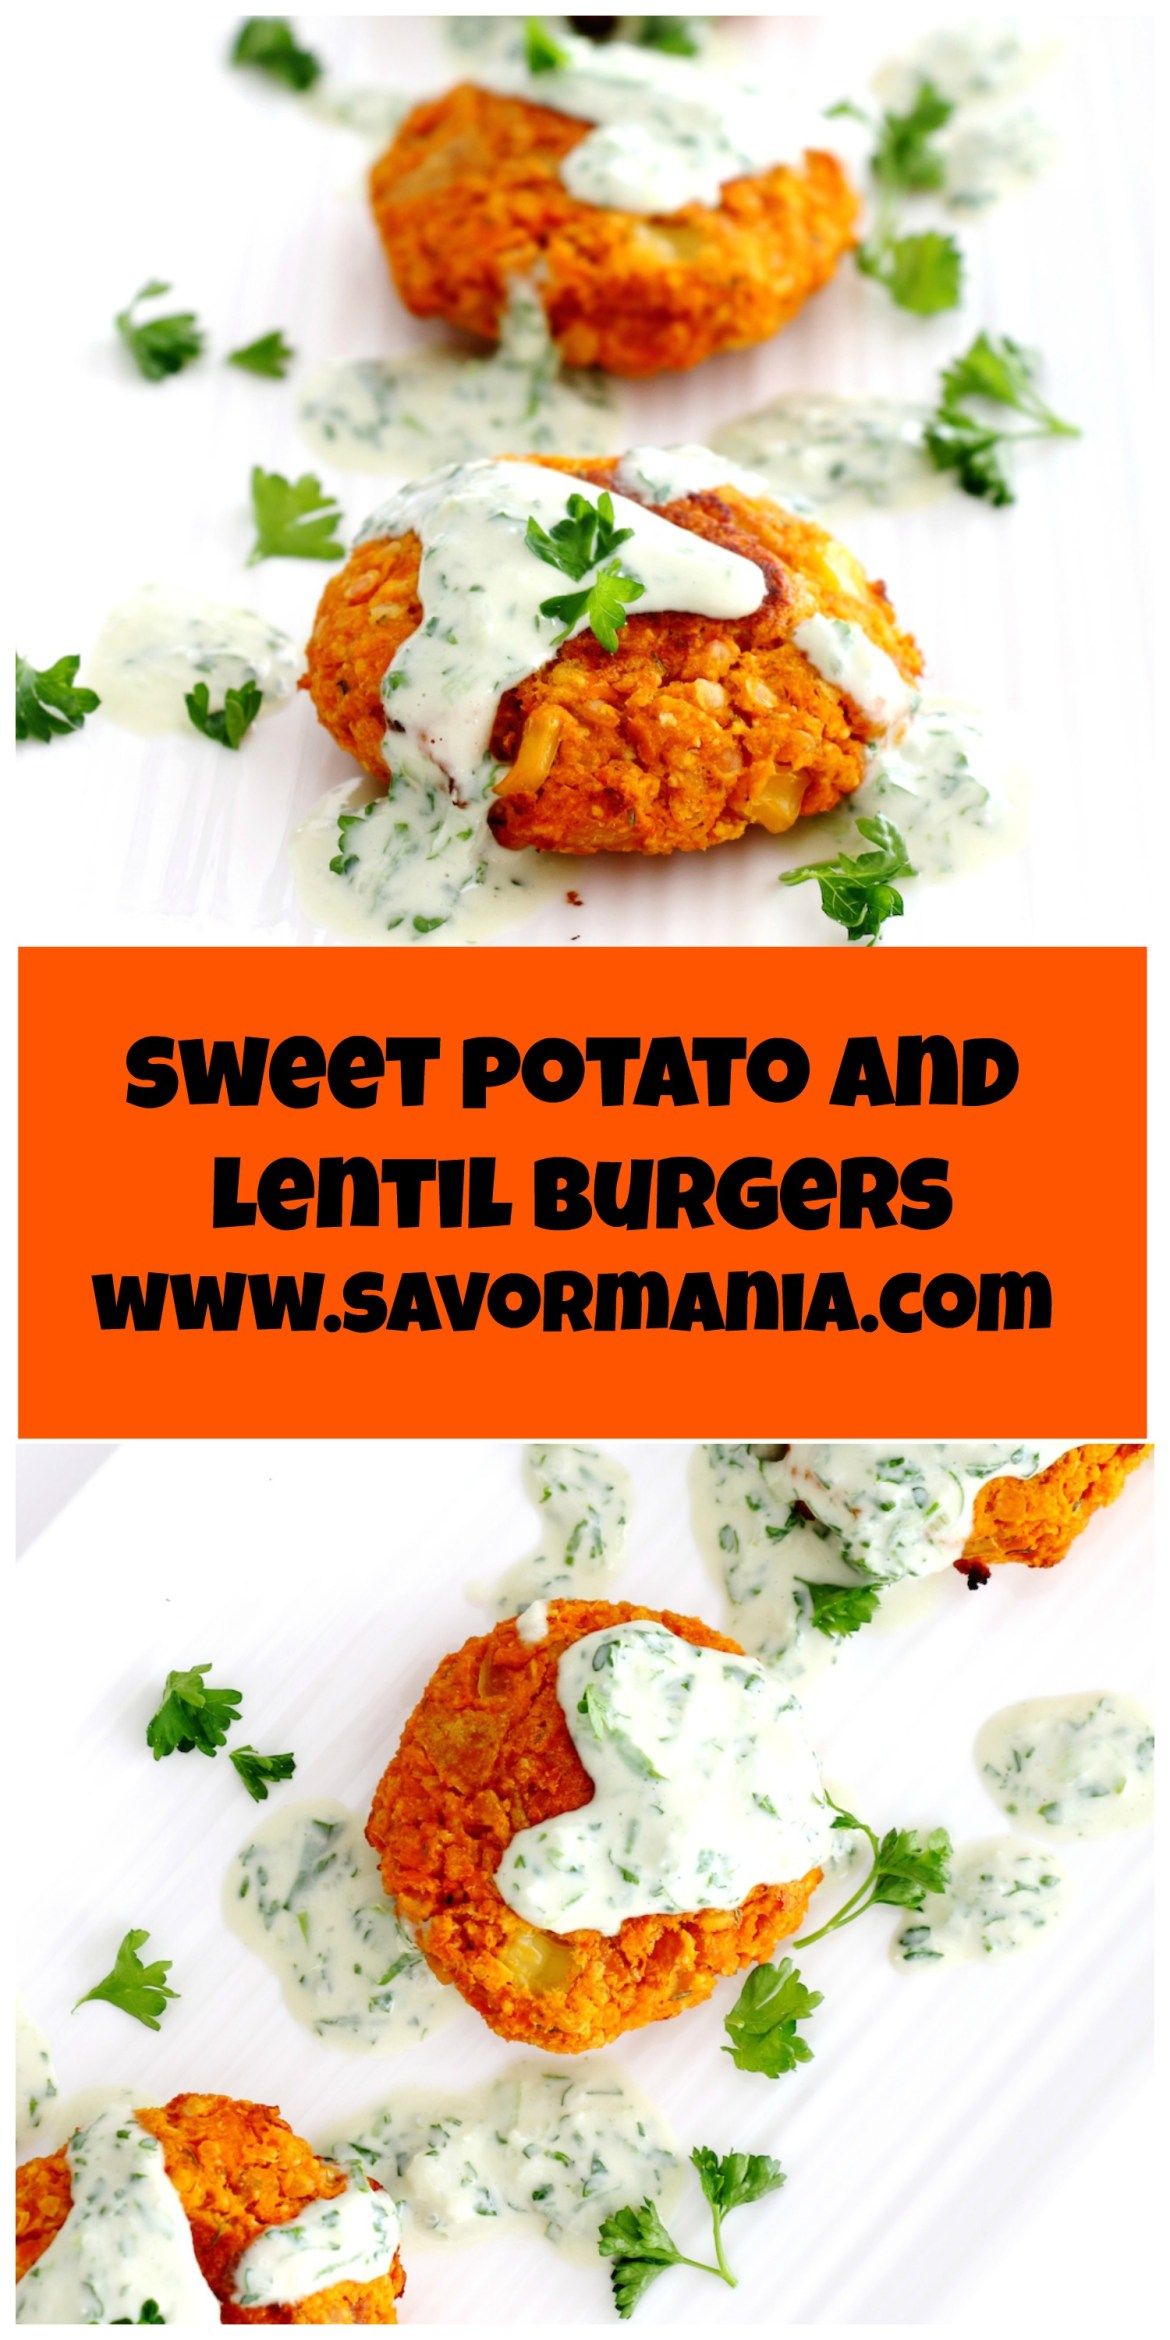 sweet potato and lentil burgers